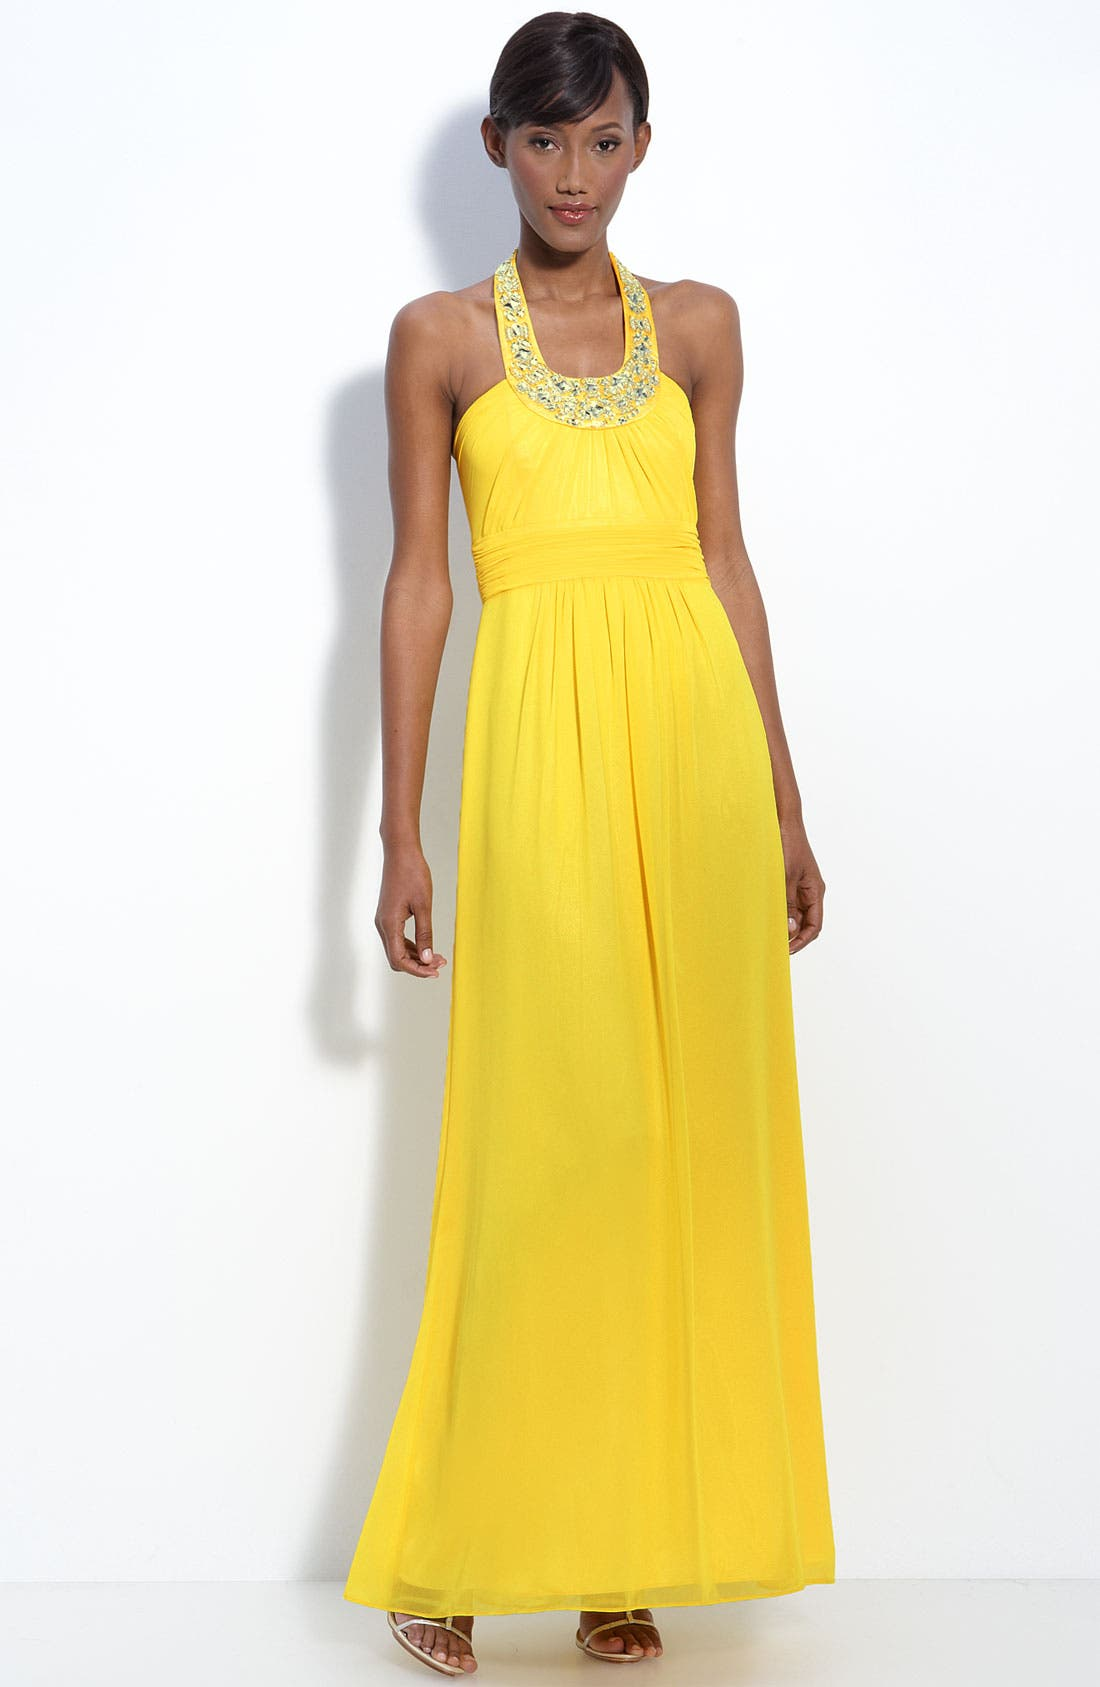 Main Image - Laundry by Shelli Segal Beaded Chiffon Halter Gown